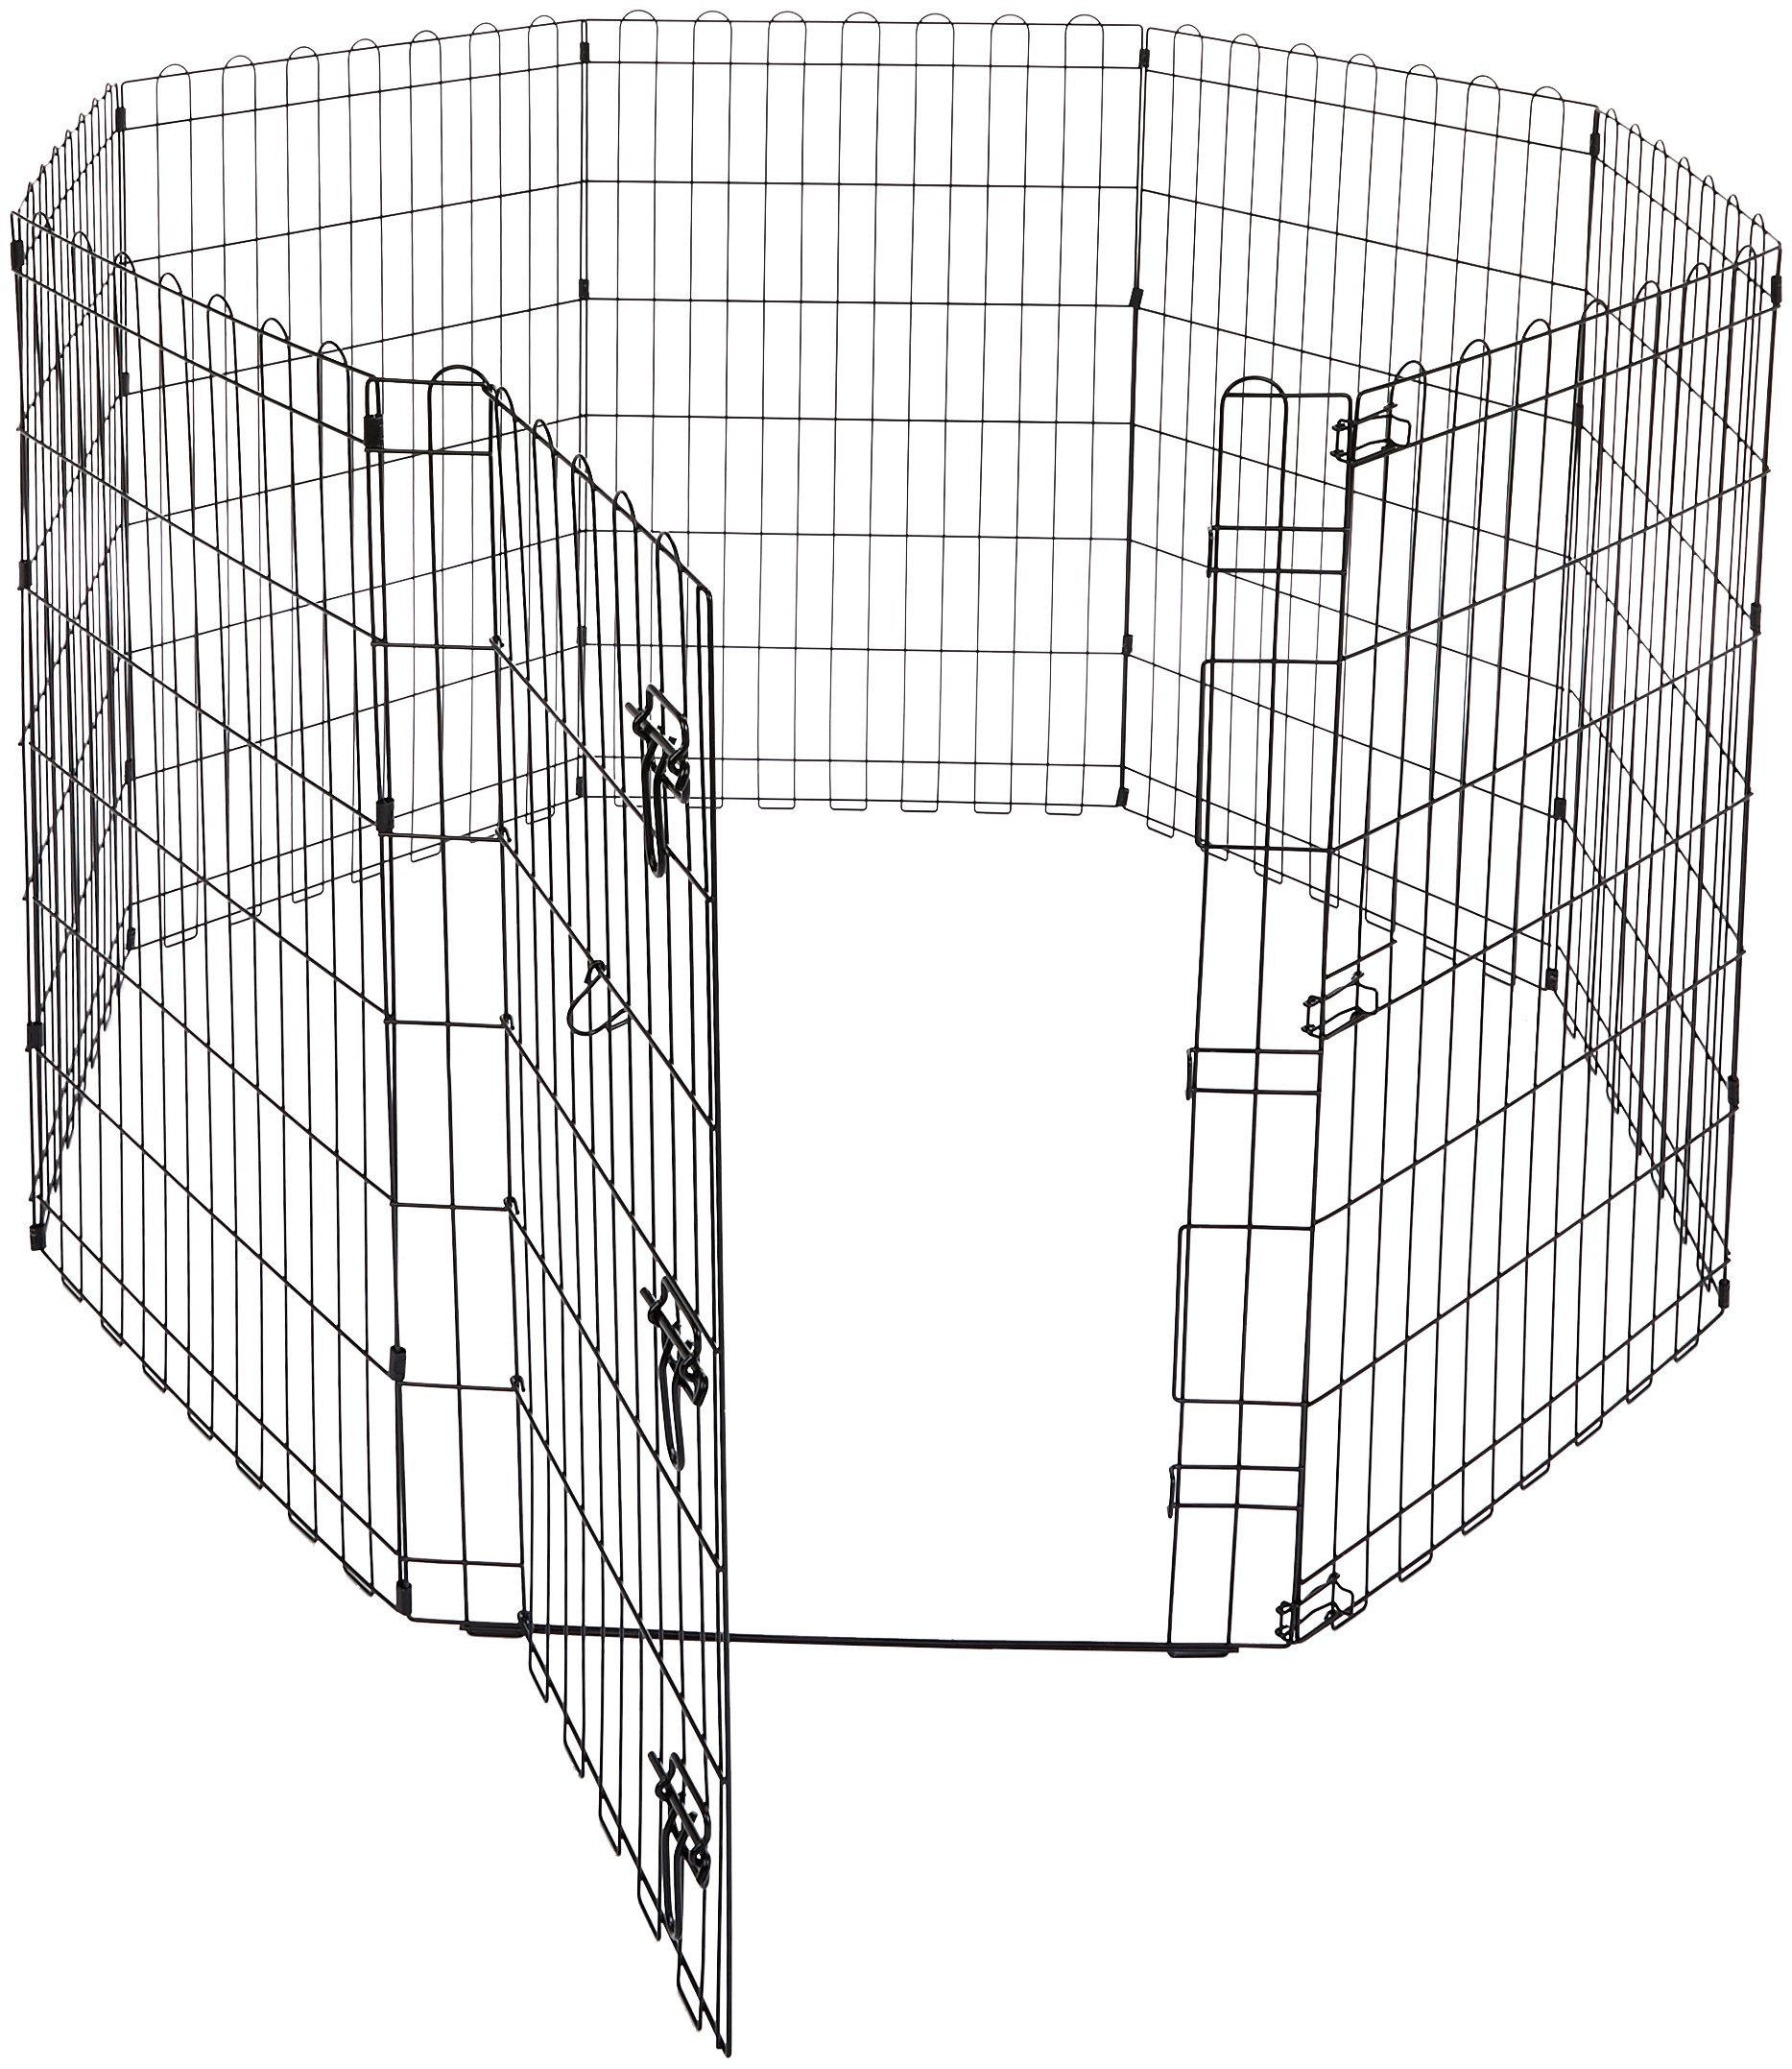 AmazonBasics Foldable Metal Pet Exercise and Playpen with Door, 36''